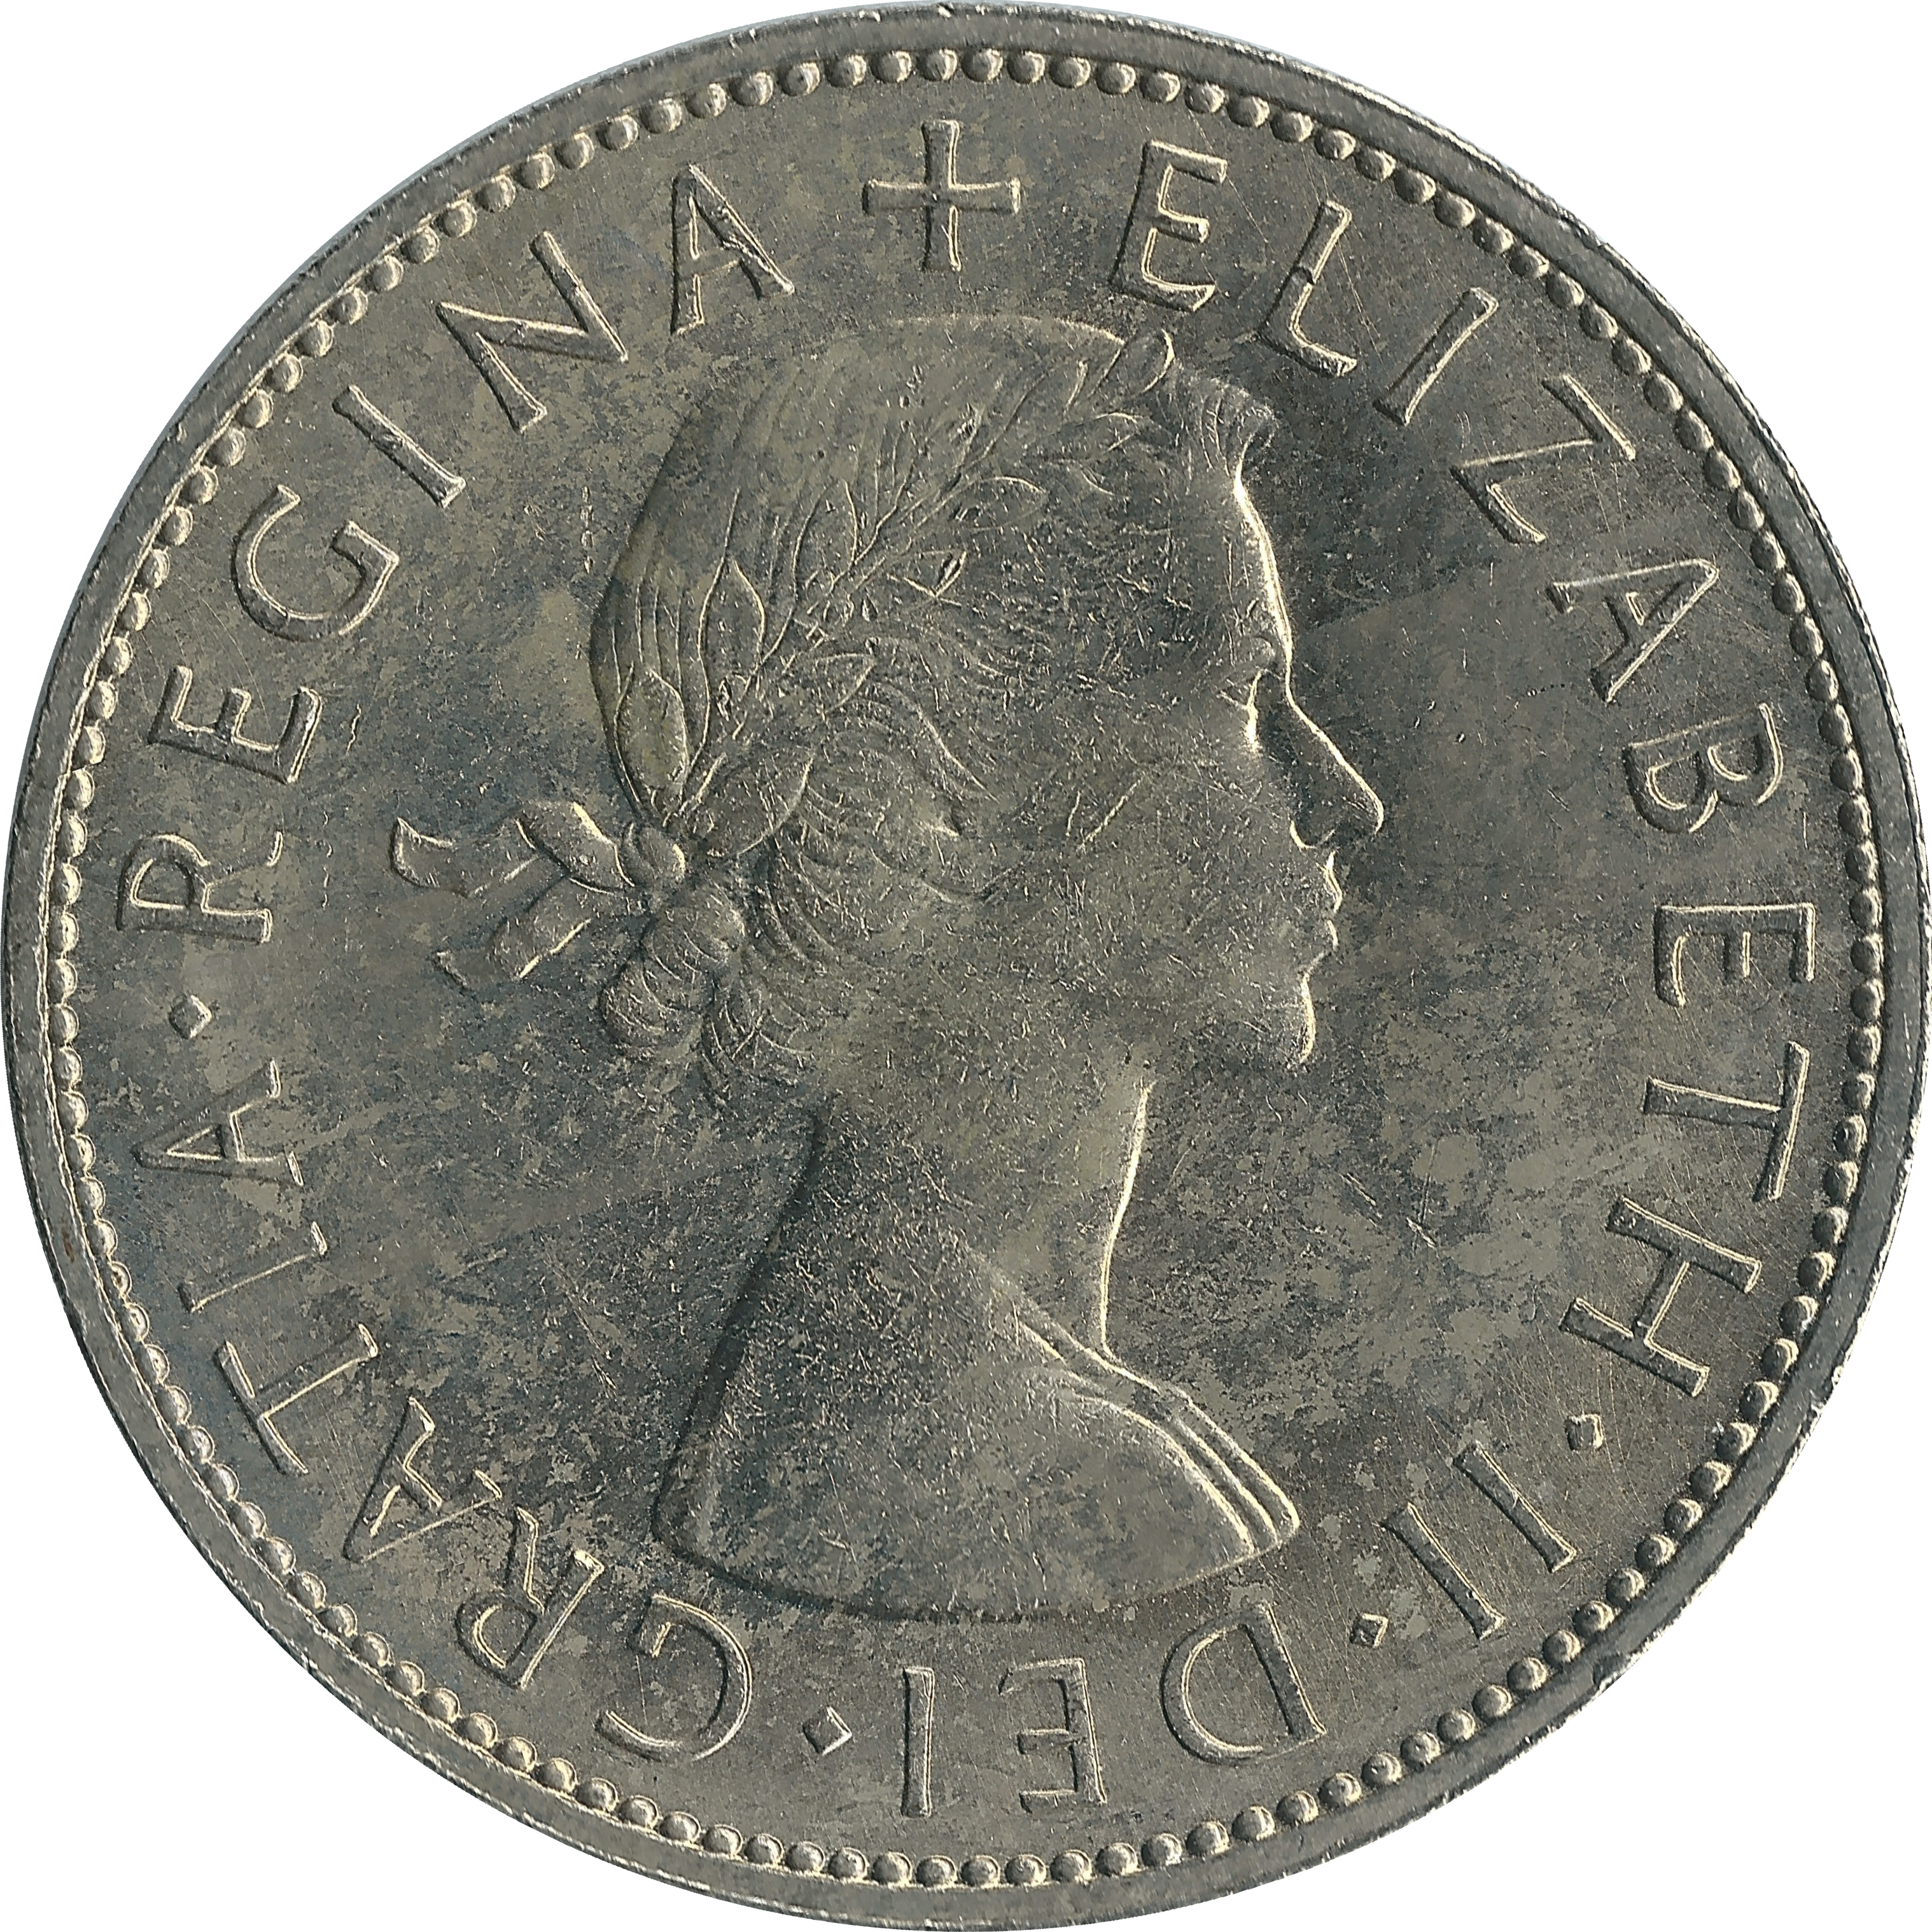 Half Crown British Coin Wikipedia